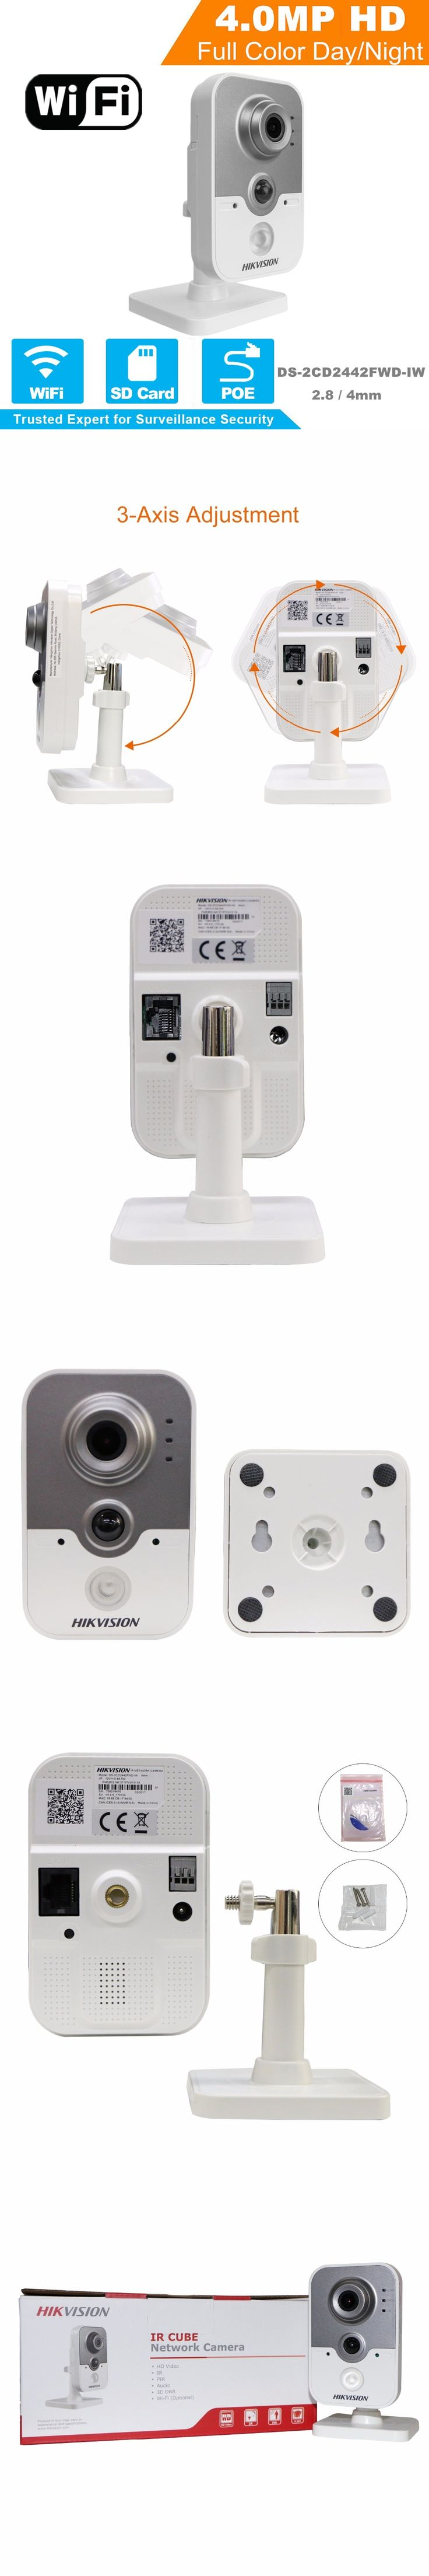 Hikvision HD Wireless IP Camera 1080P DS-2CD2442FWD-IW 4MP IR Cube Network WiFi IP Camera Android Support Replace DS-2CD2432F-IW